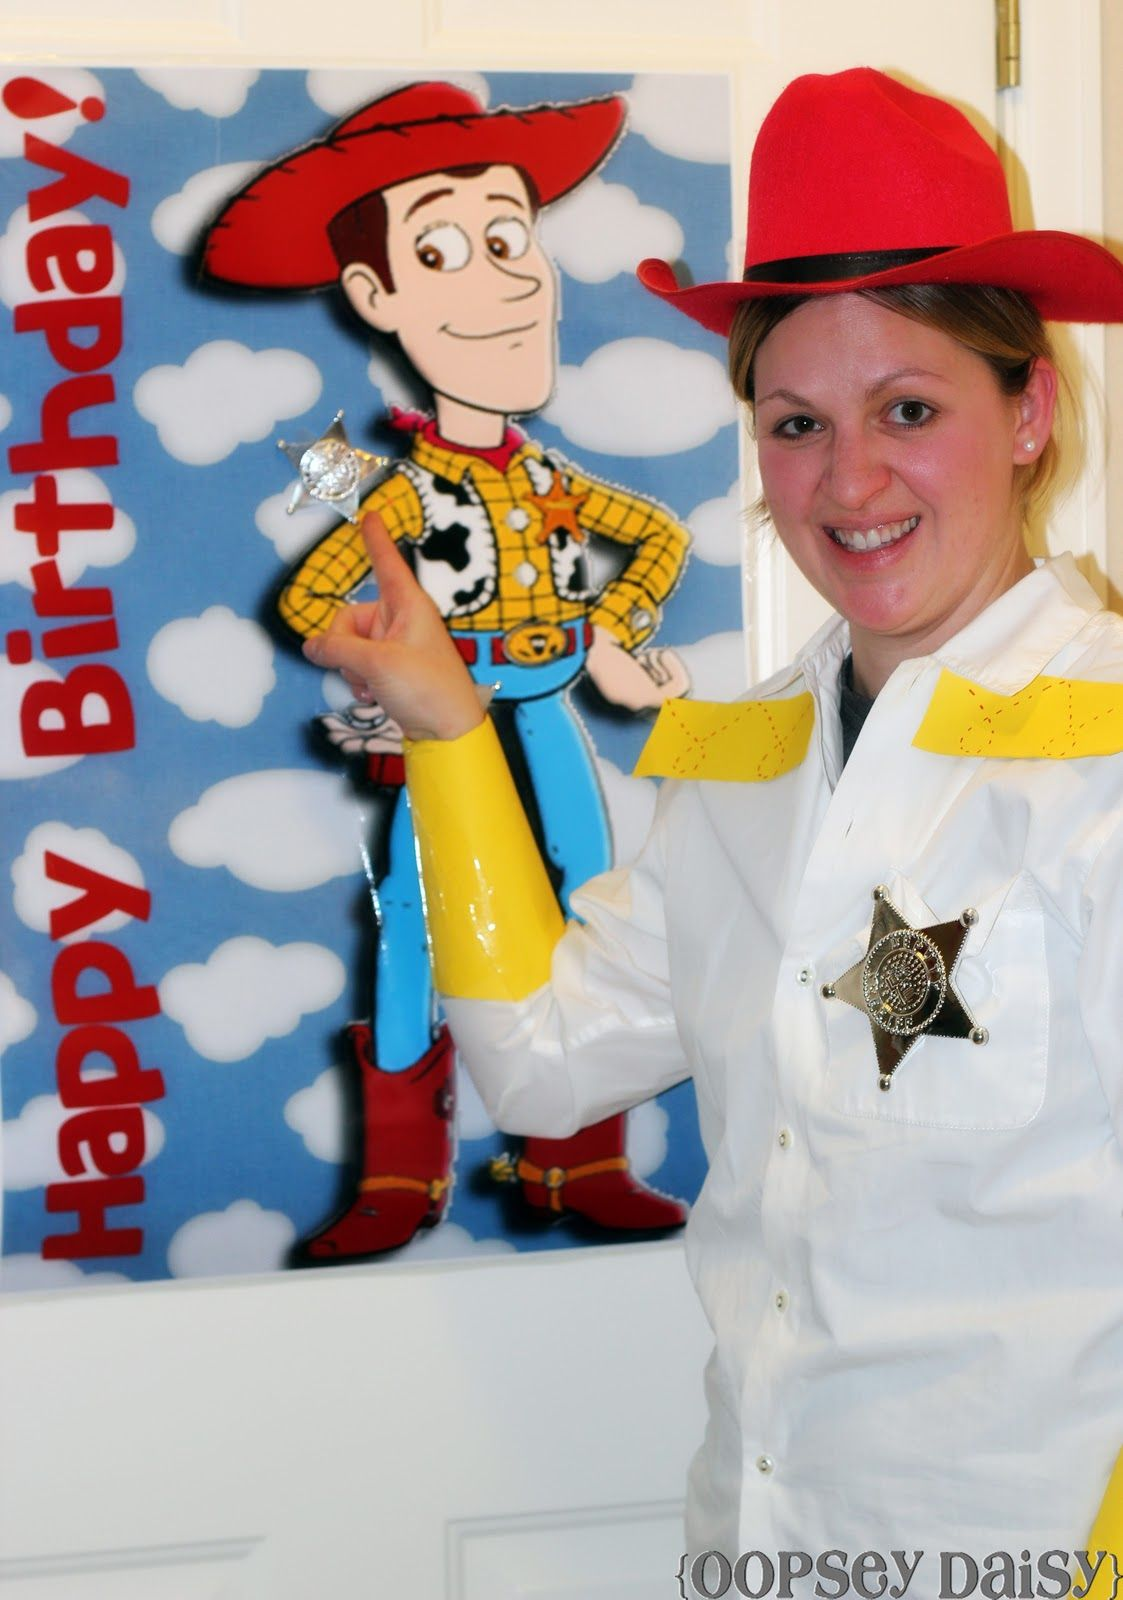 Pin The Badge On Woody Game Toy Story Birthday Party Oopsey Daisy Toy Story Birthday Party Toy Story Birthday Disney Birthday Party